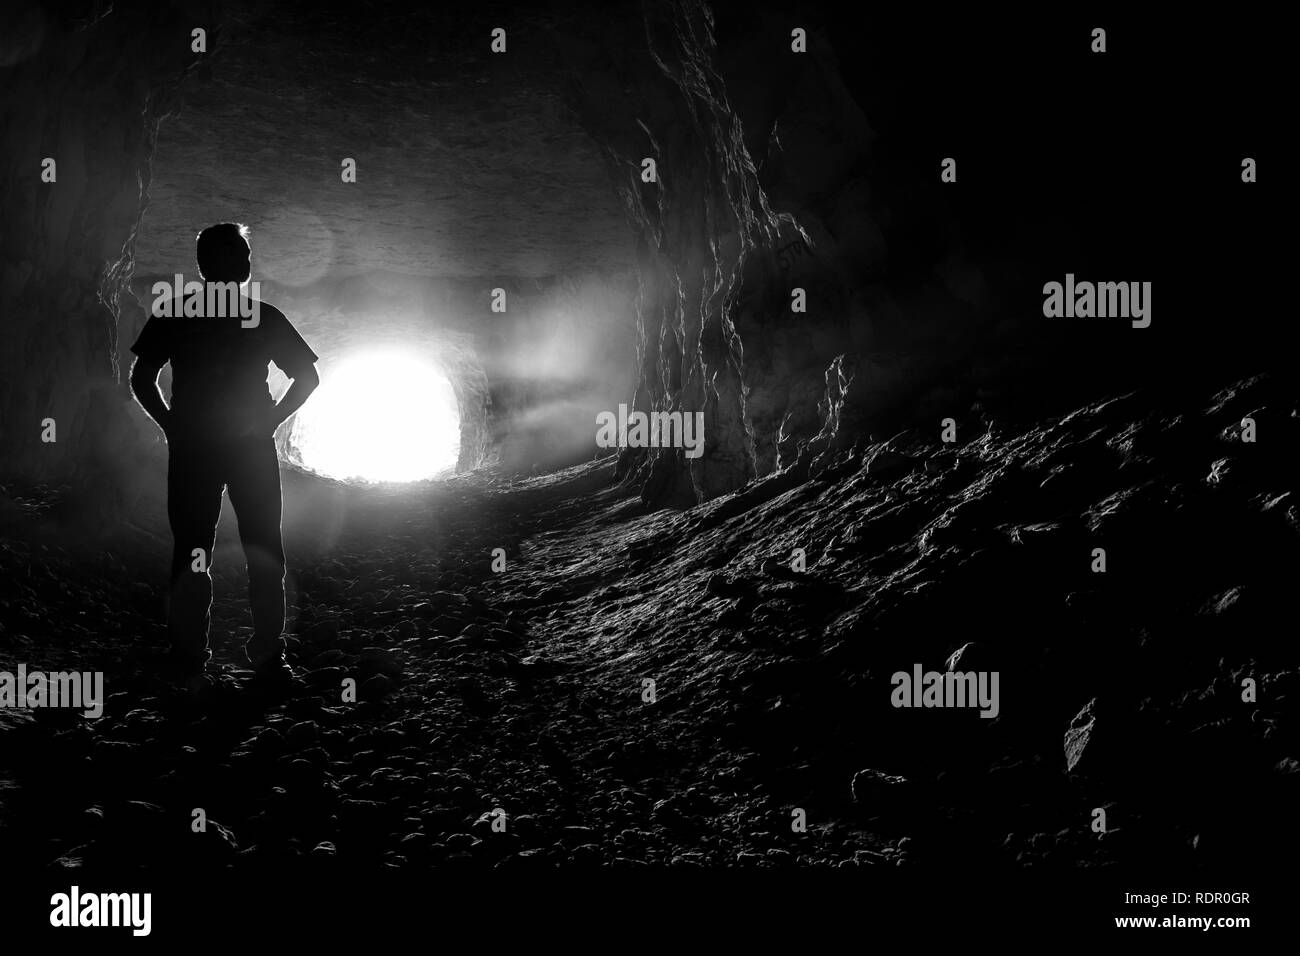 Silhouette of a man in the corridors of a creepy dark cave. - Stock Image